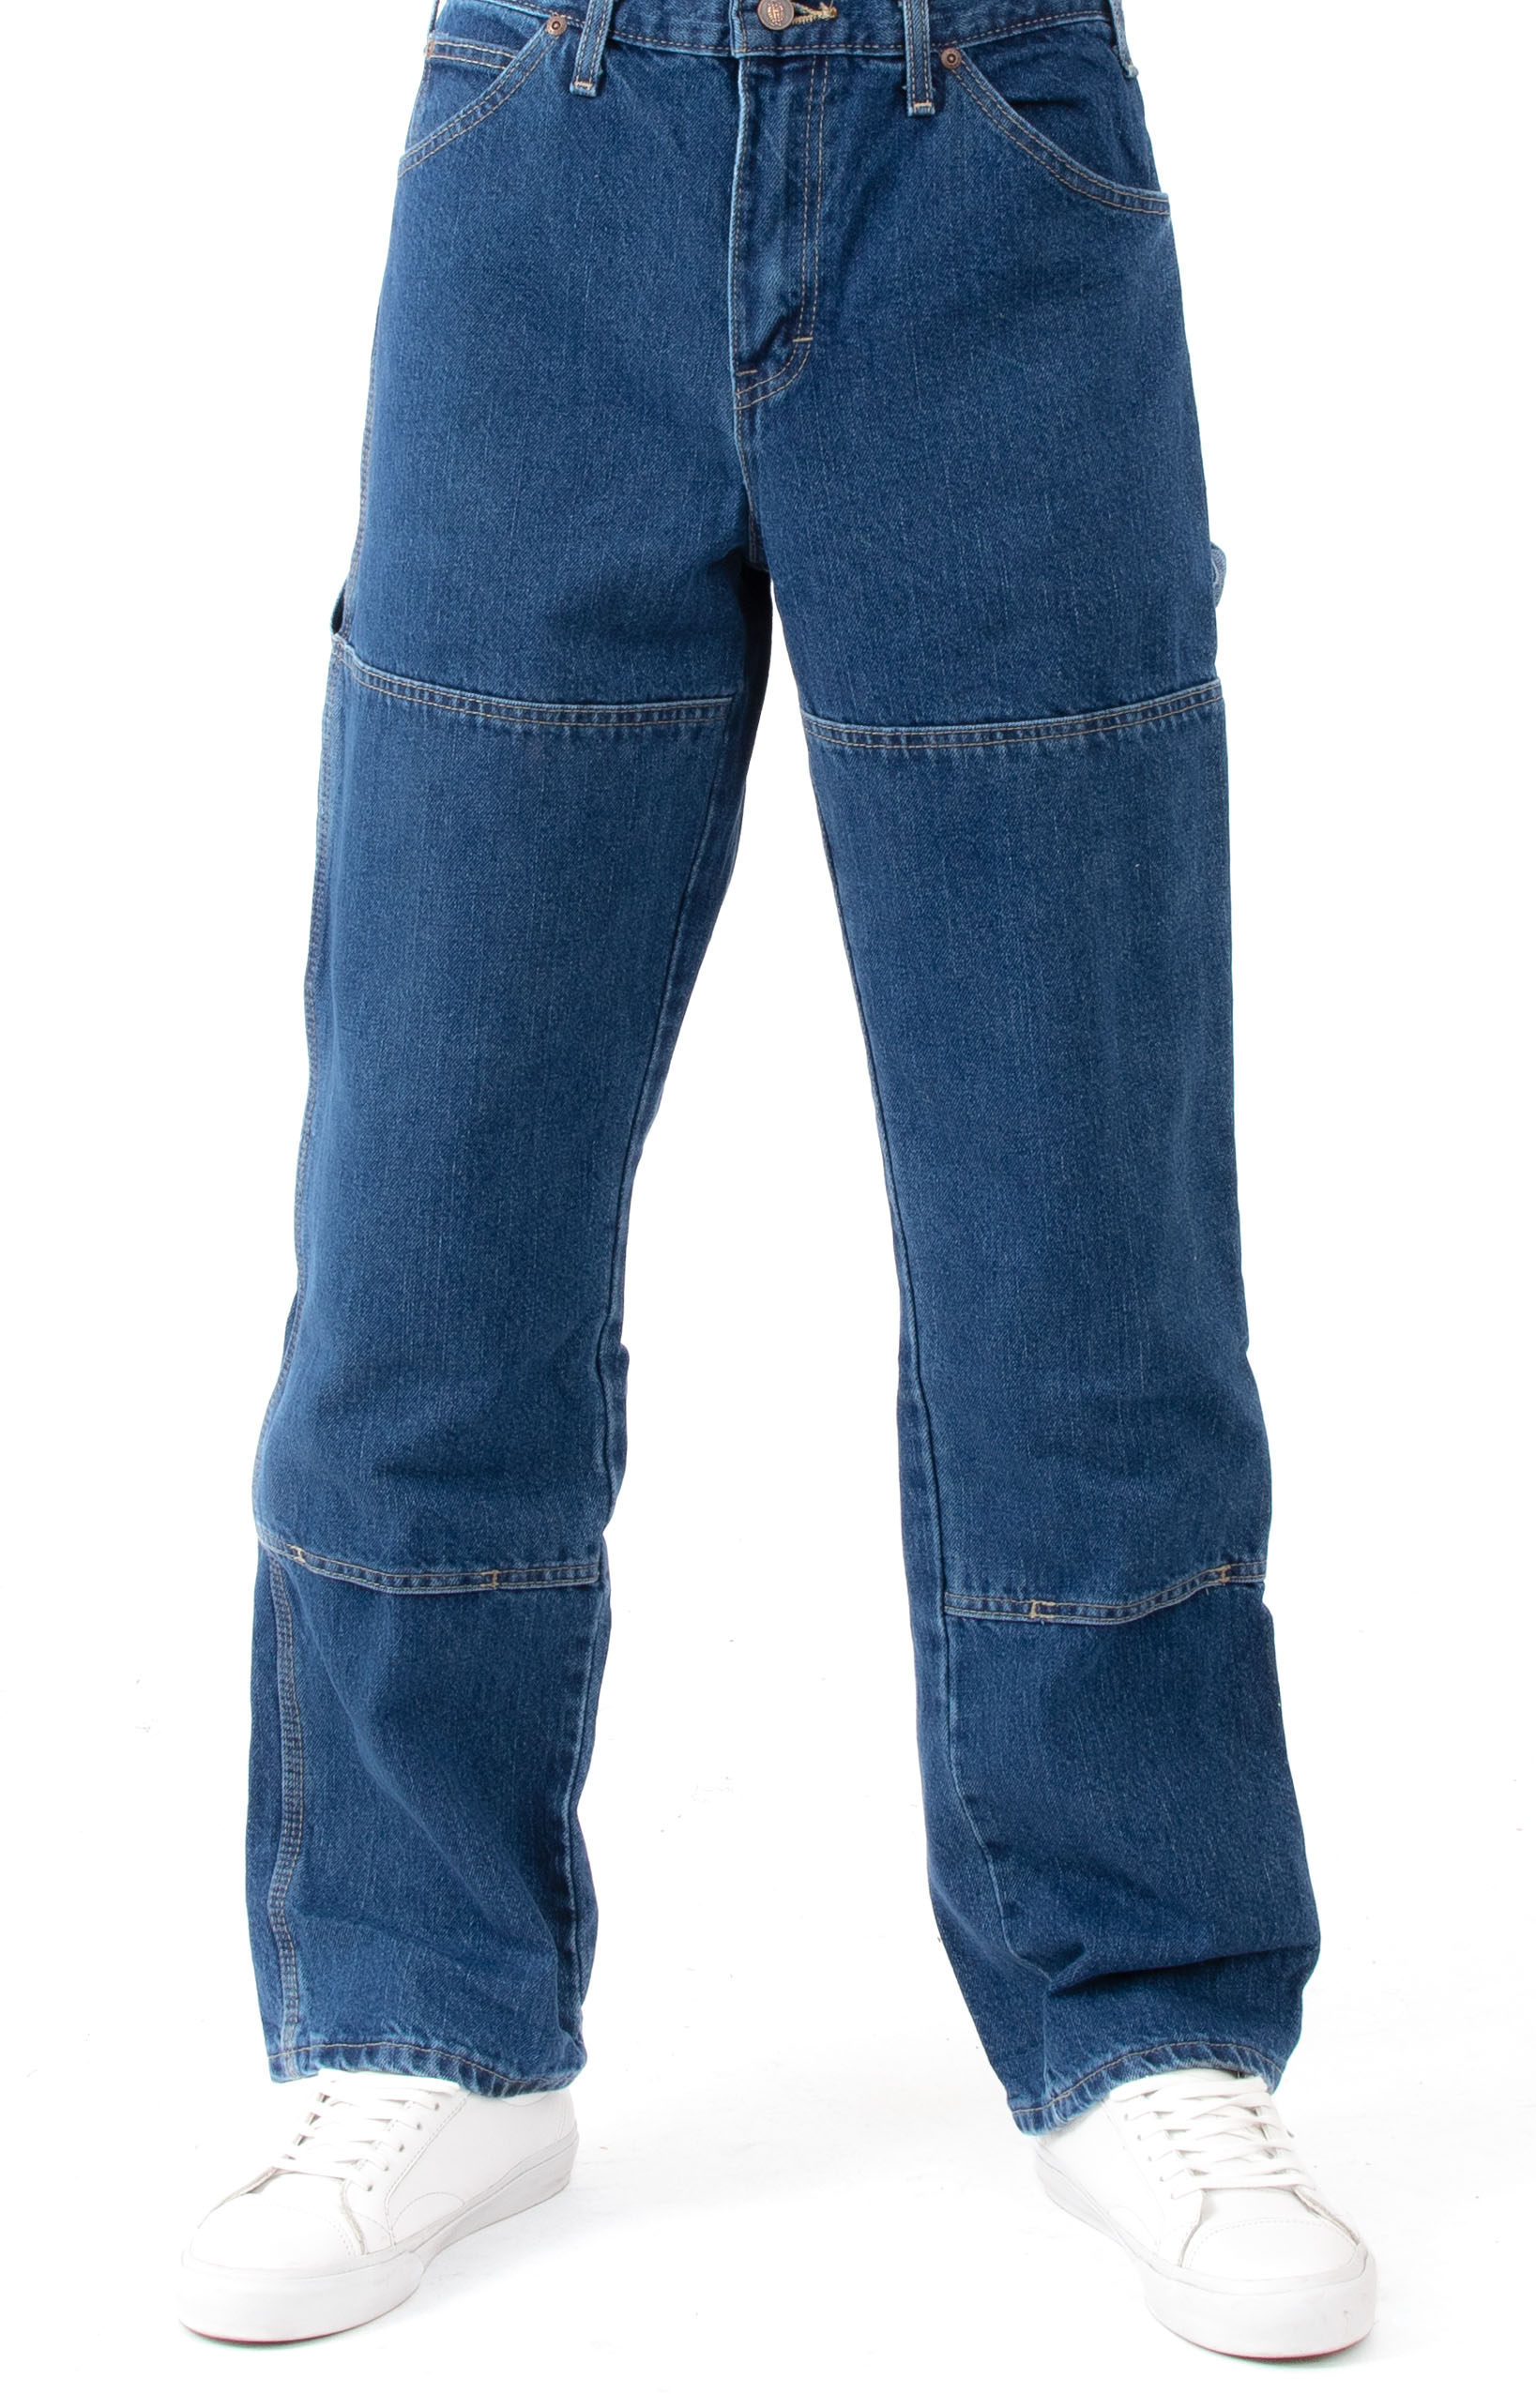 (20694SNB) Relaxed Fit Double Knee Carpenter Denim Jeans - Stonewashed Indigo Blue 2